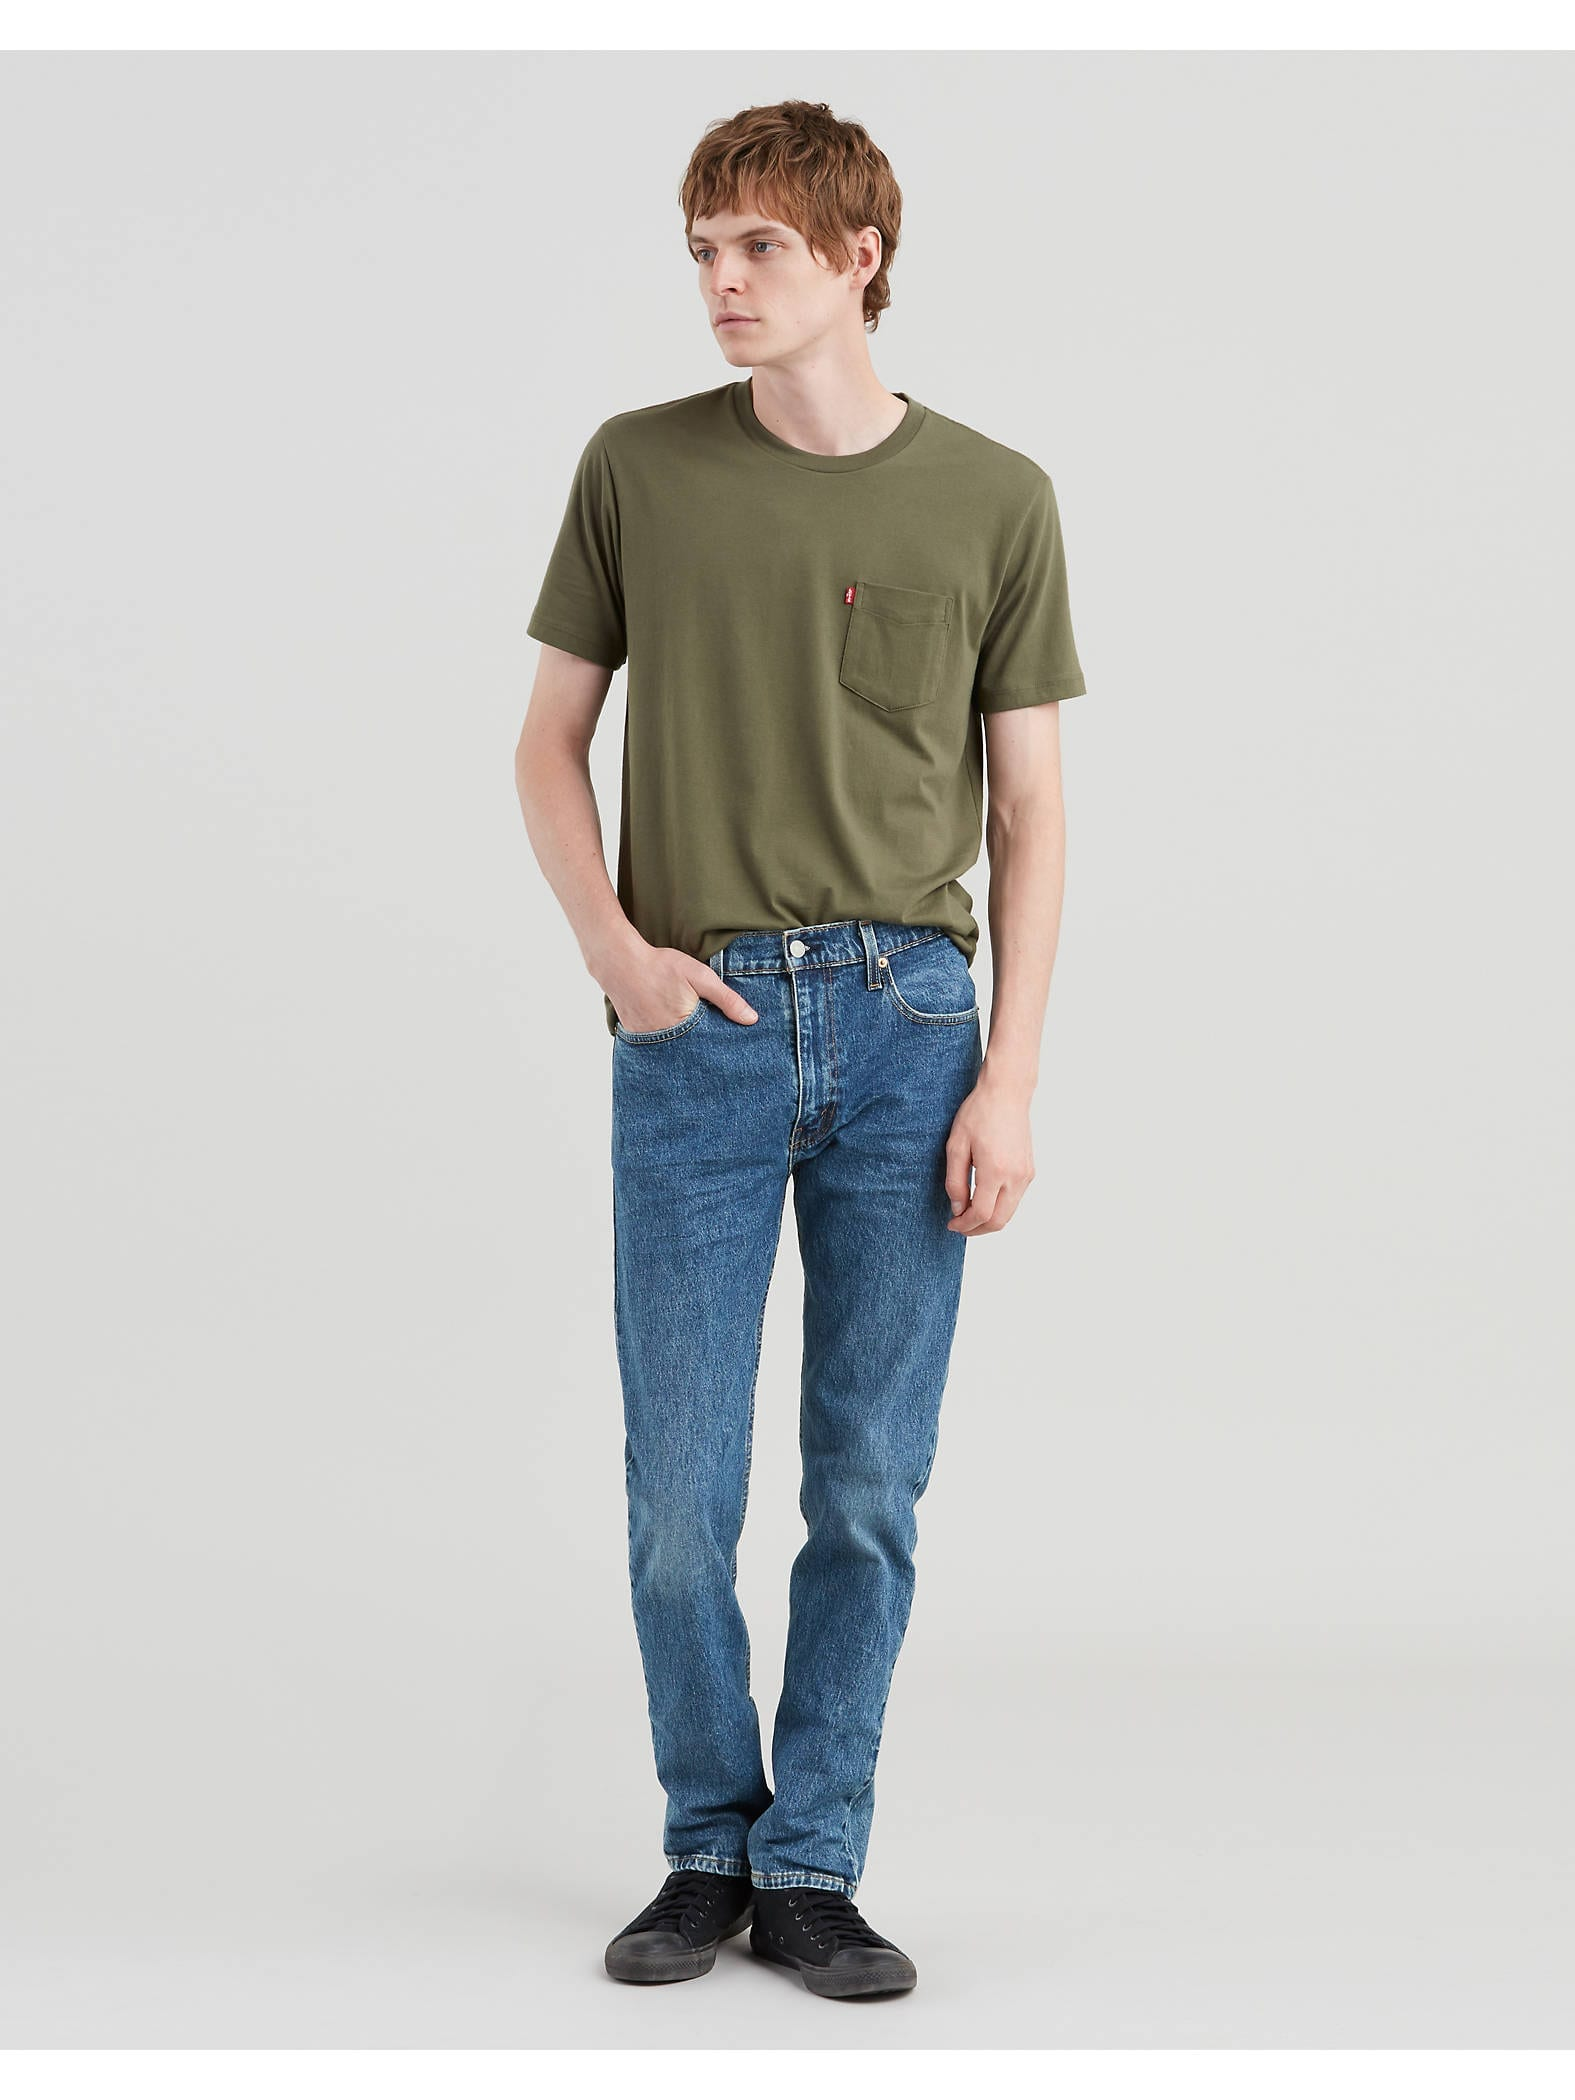 Levis: Up to 75% off warehouse sale!